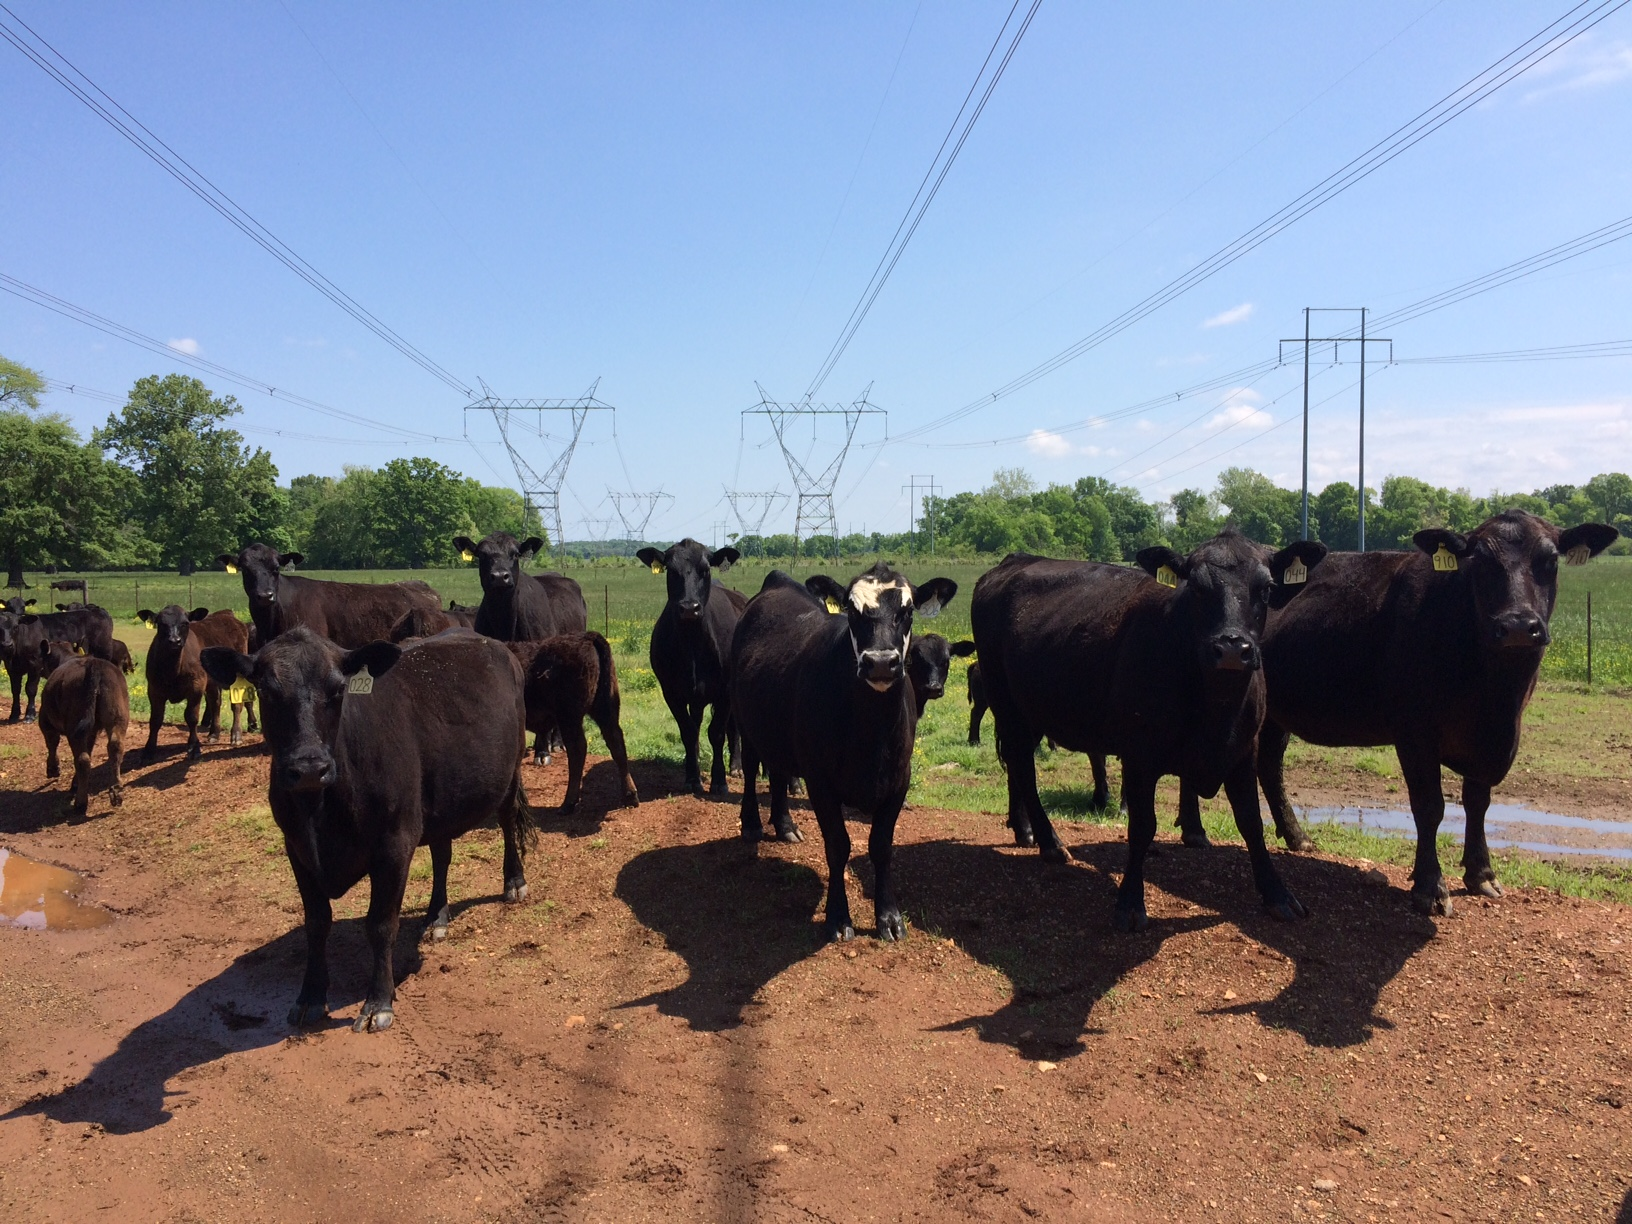 Herd of cattle standing in a pasture.